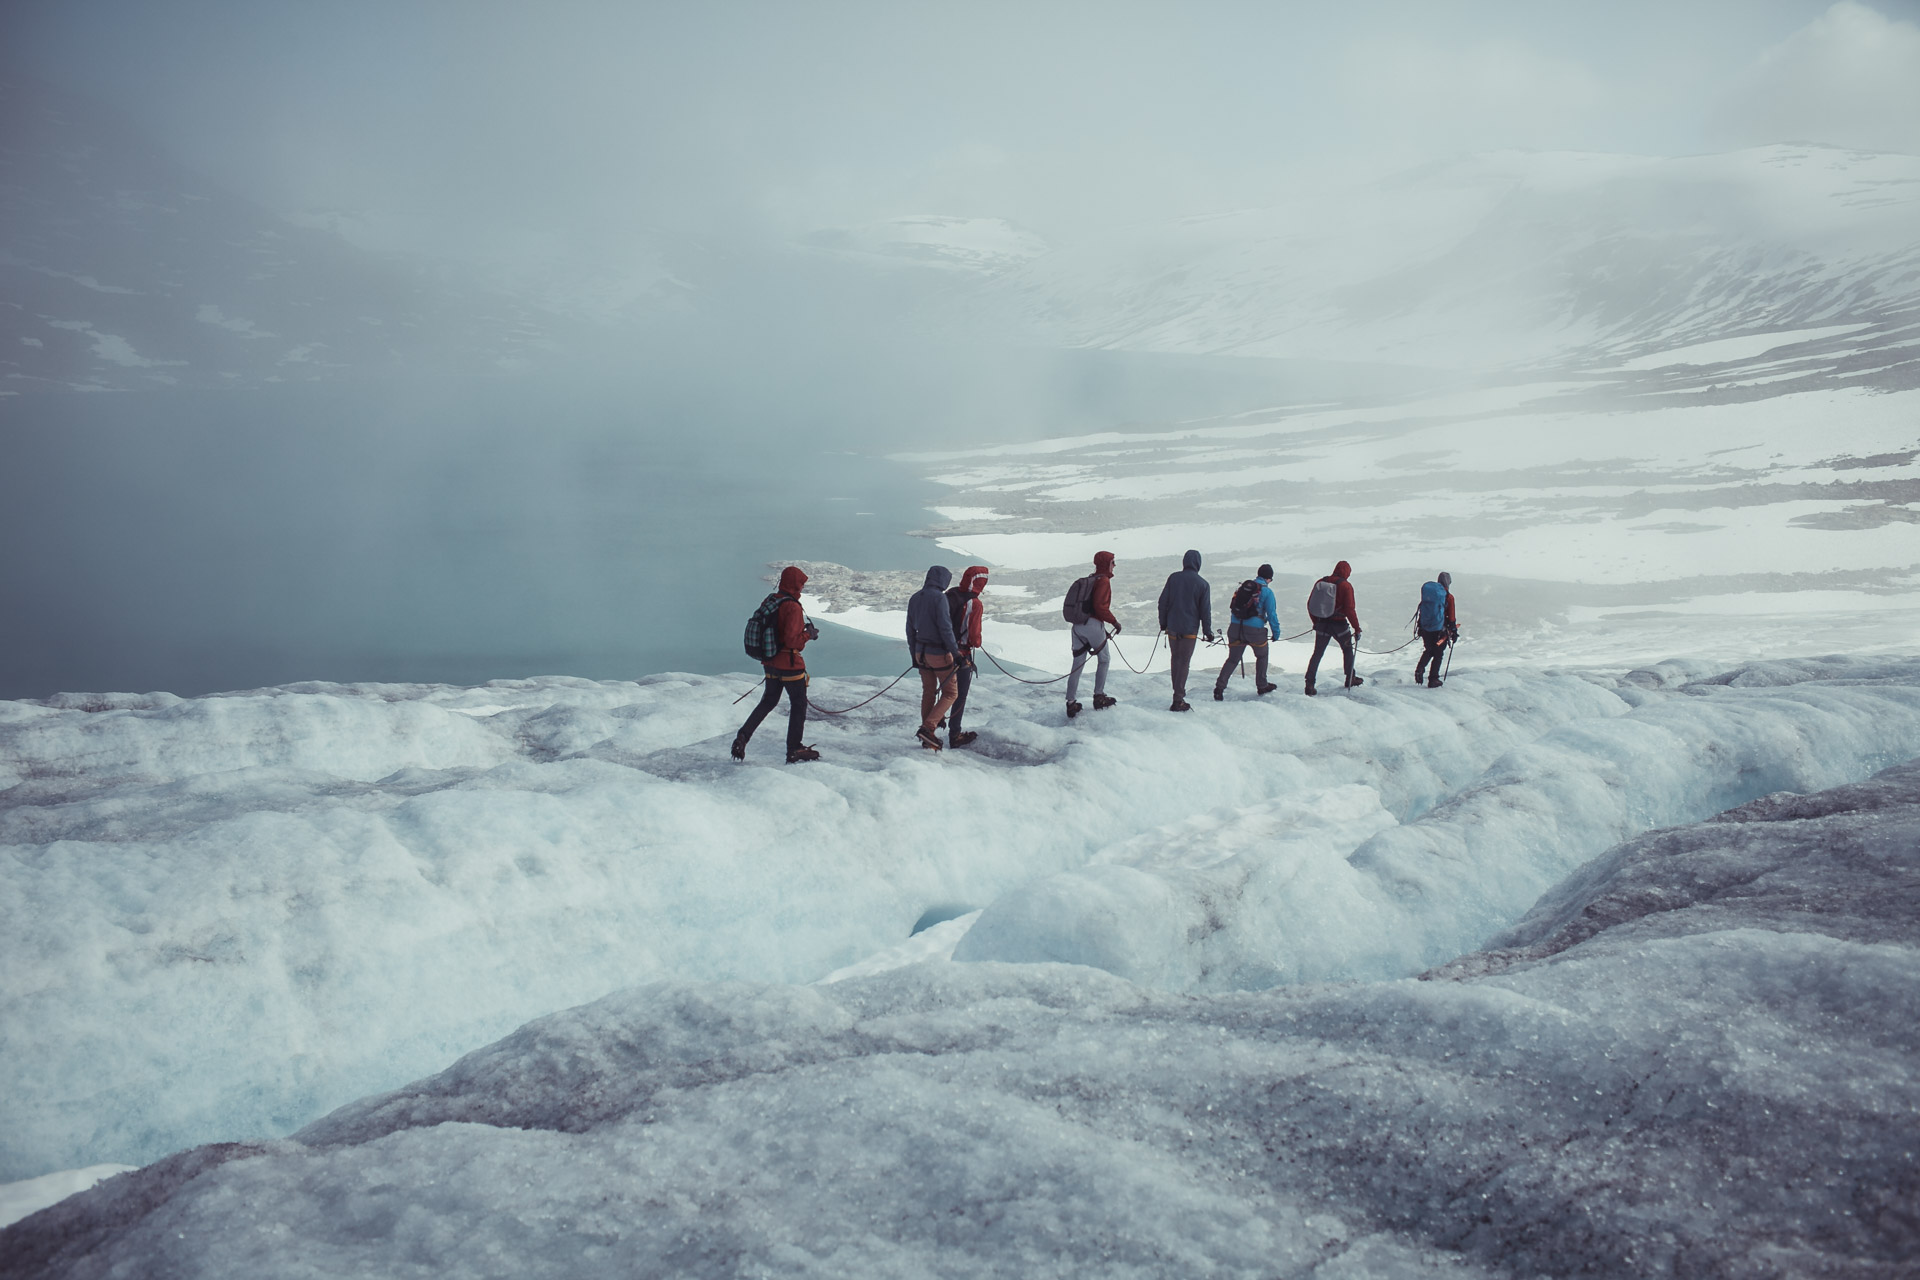 Our group traversing the 1000 year old glacier.